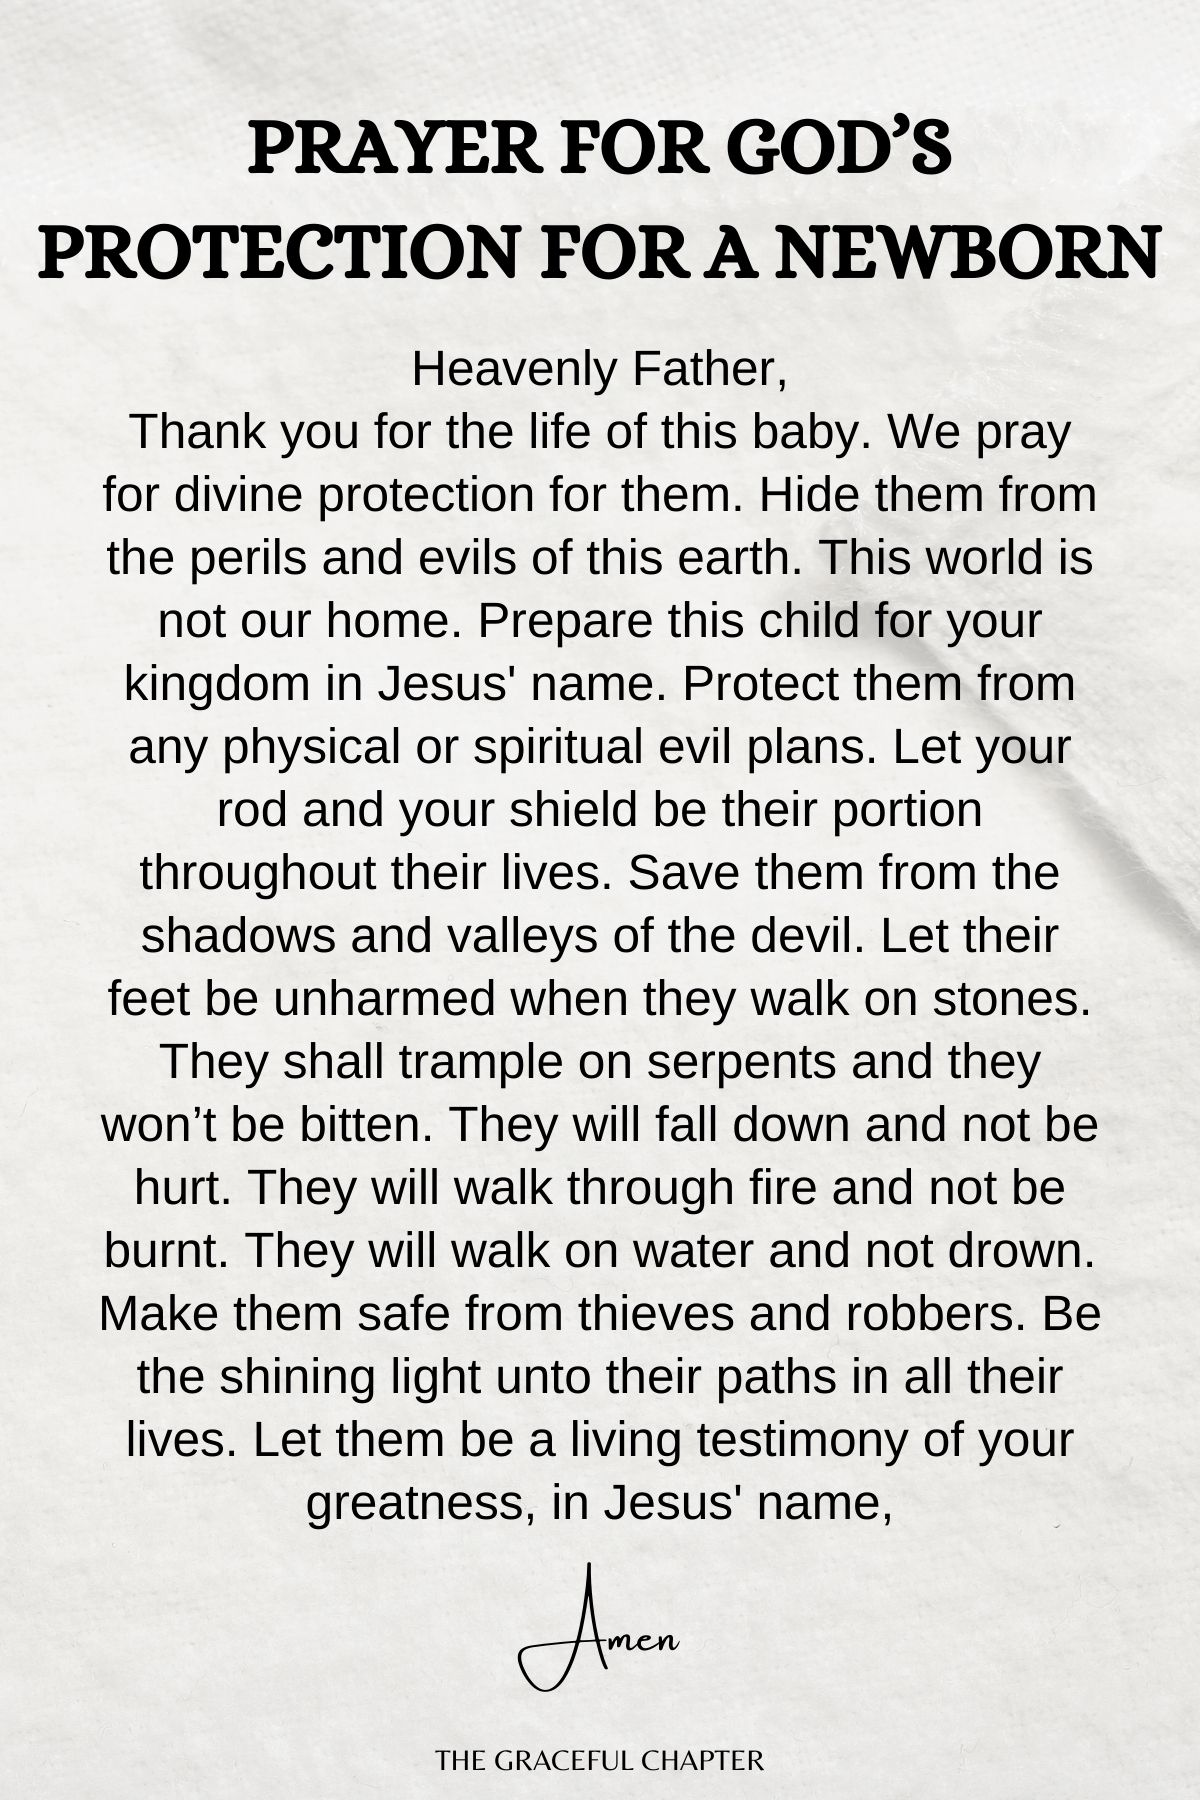 Prayer for God's protection for a Newborn